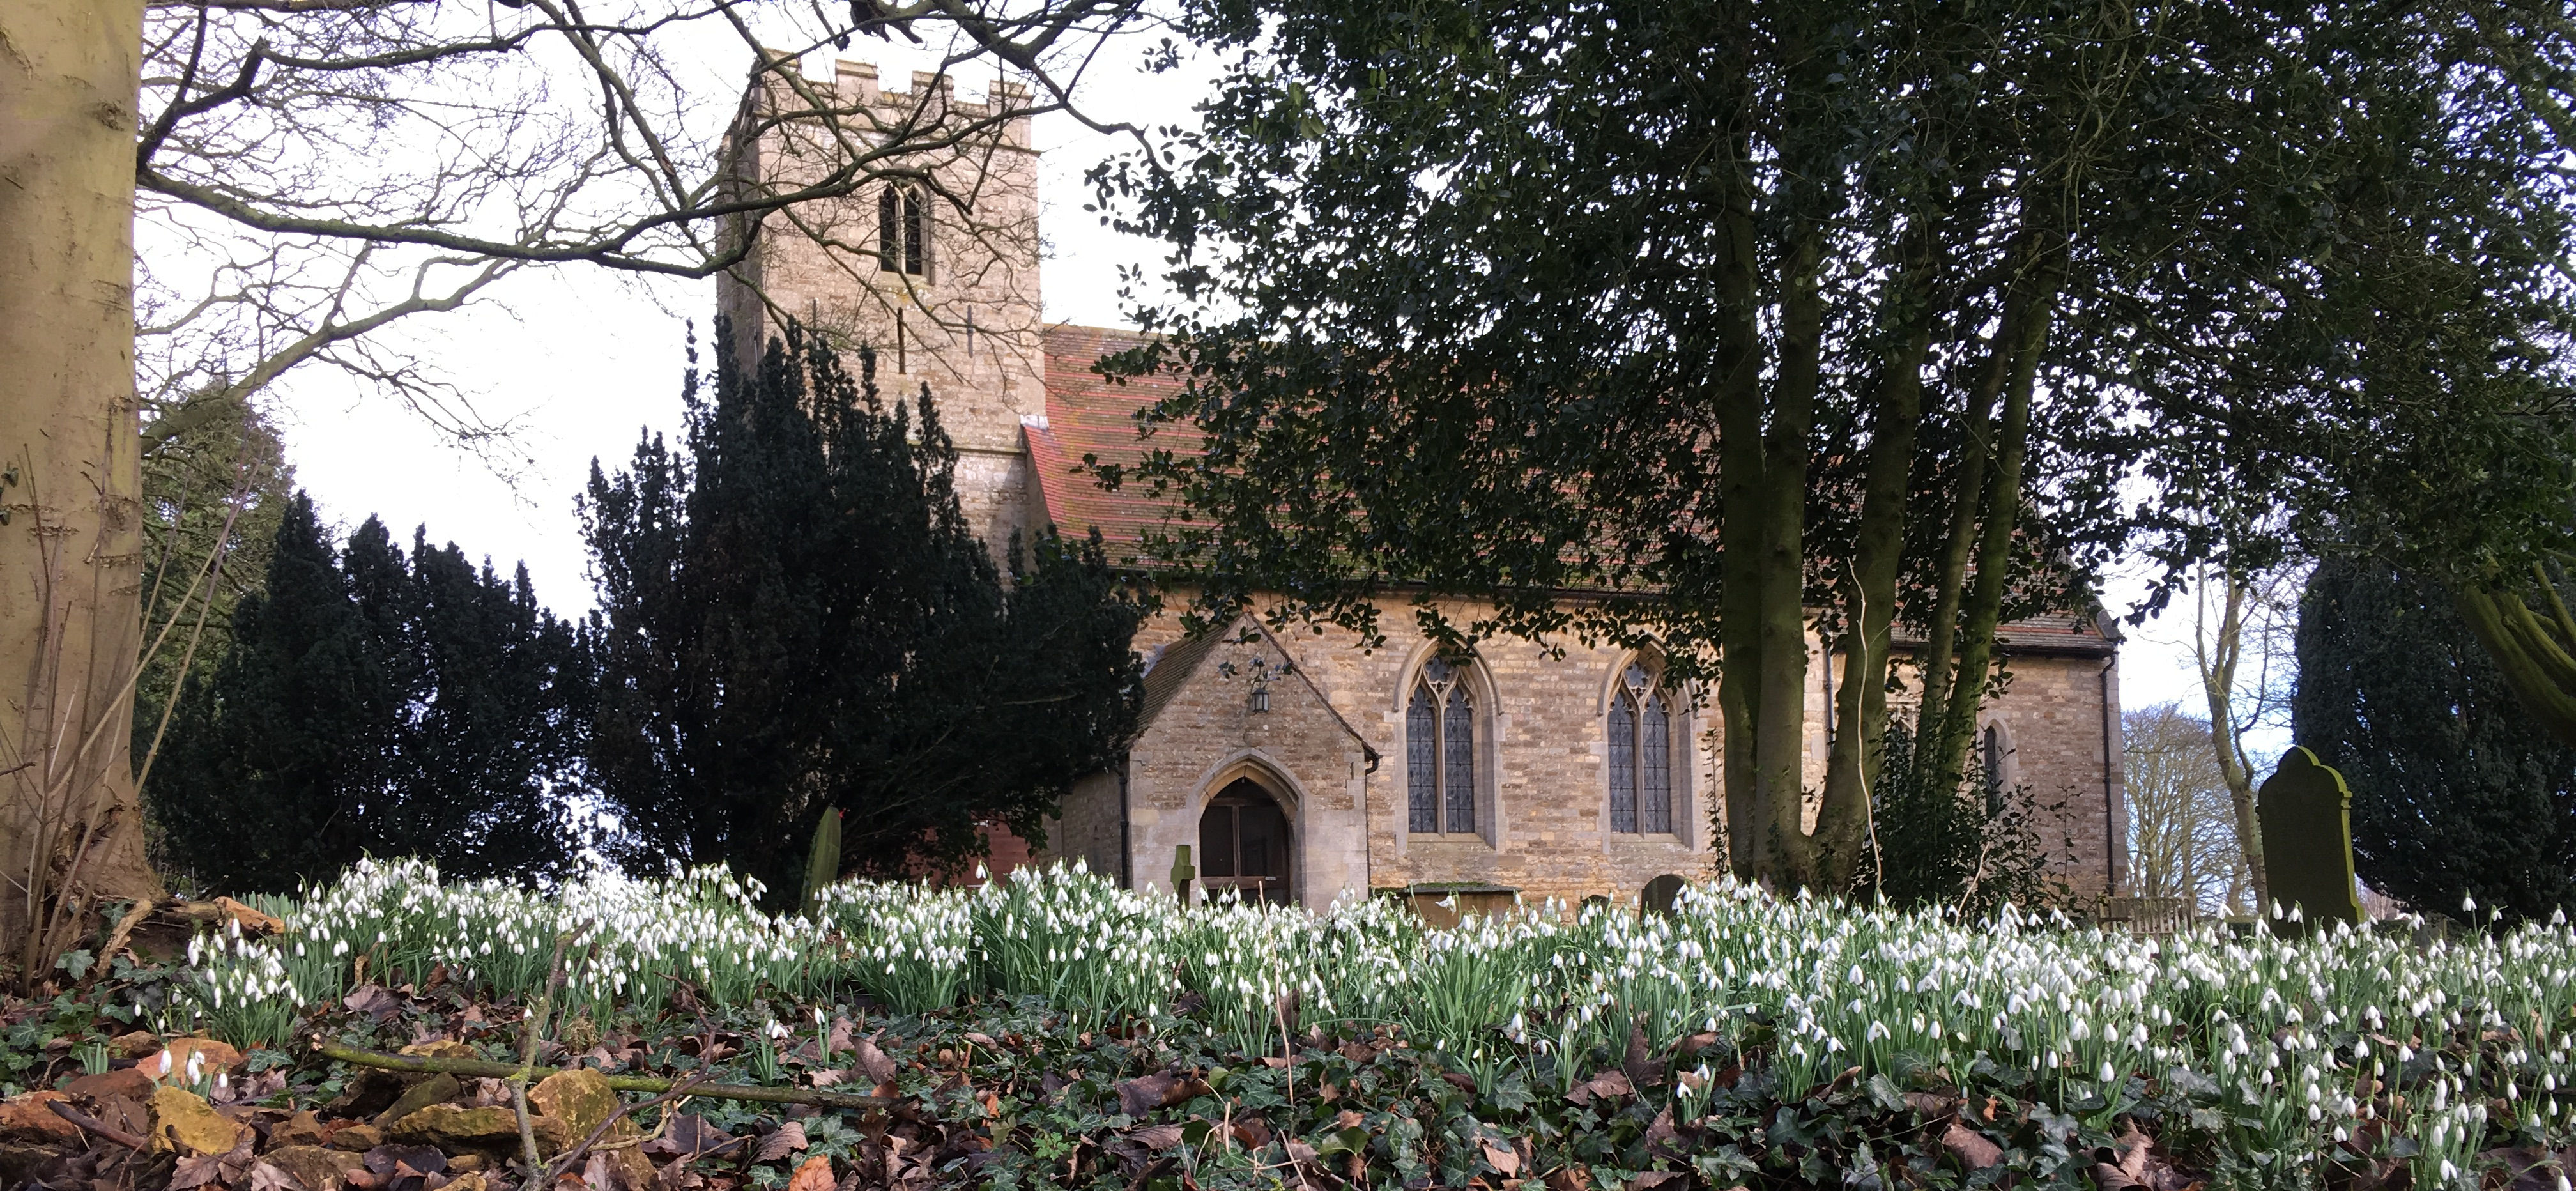 A walk around the churchyard in late February reveals swaythes of snowdrops and aconites...Yes spring is on its way.